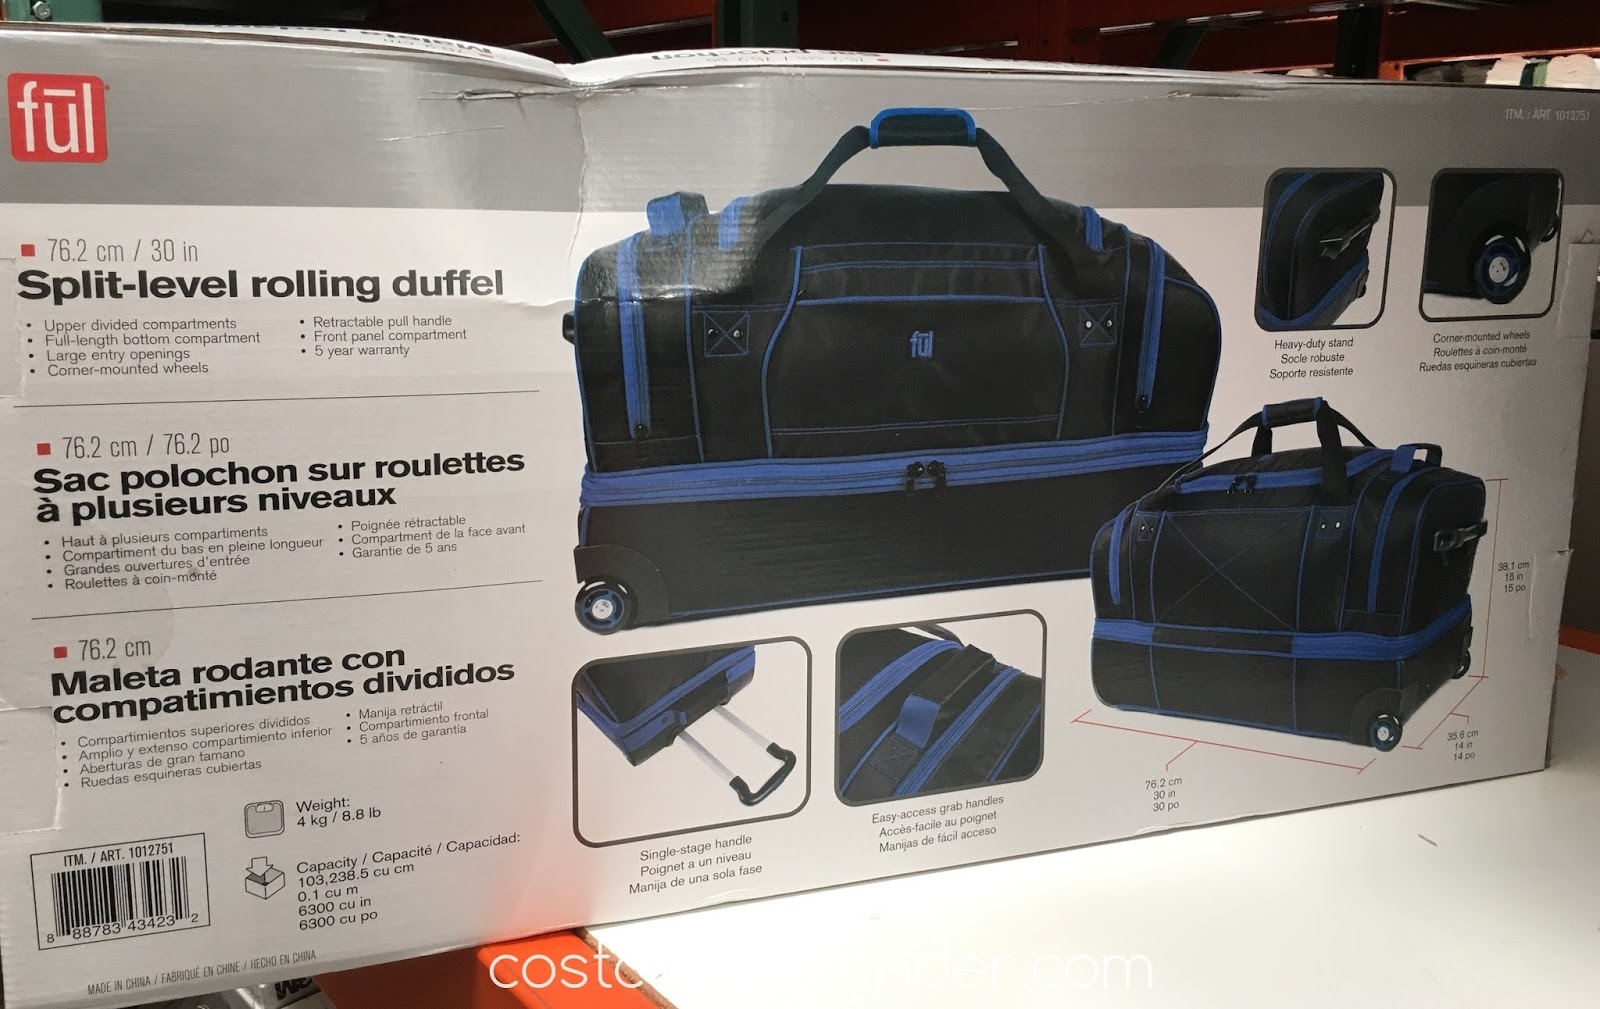 Costco 1012751 Travel The Right Way With Ful Split Level Rolling Duffel Bag